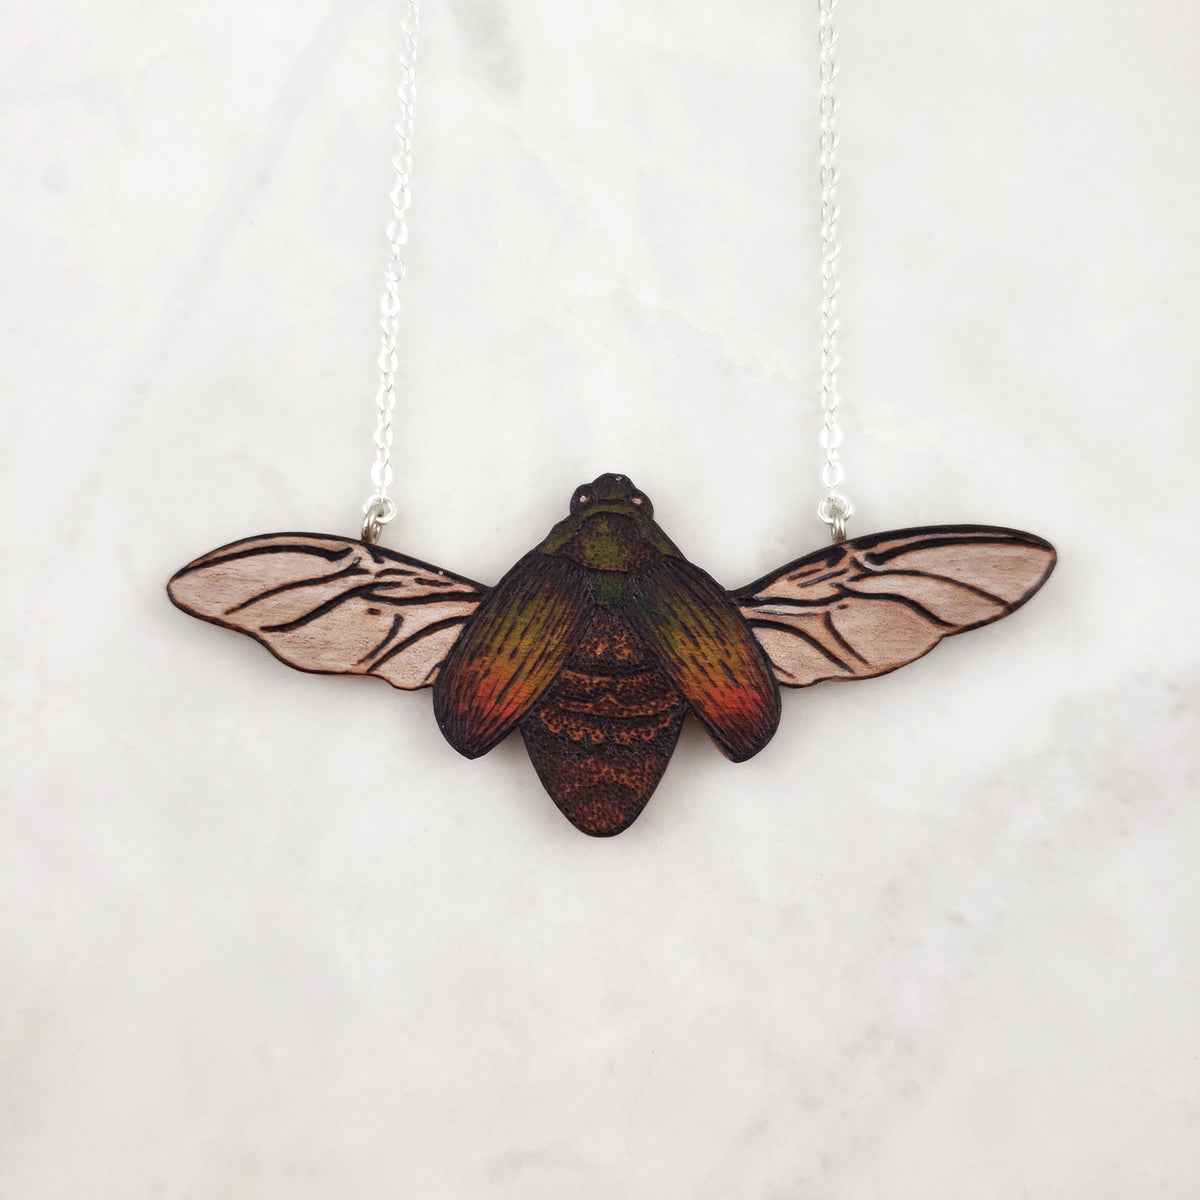 Wooden Necklace - Scarab Beetle